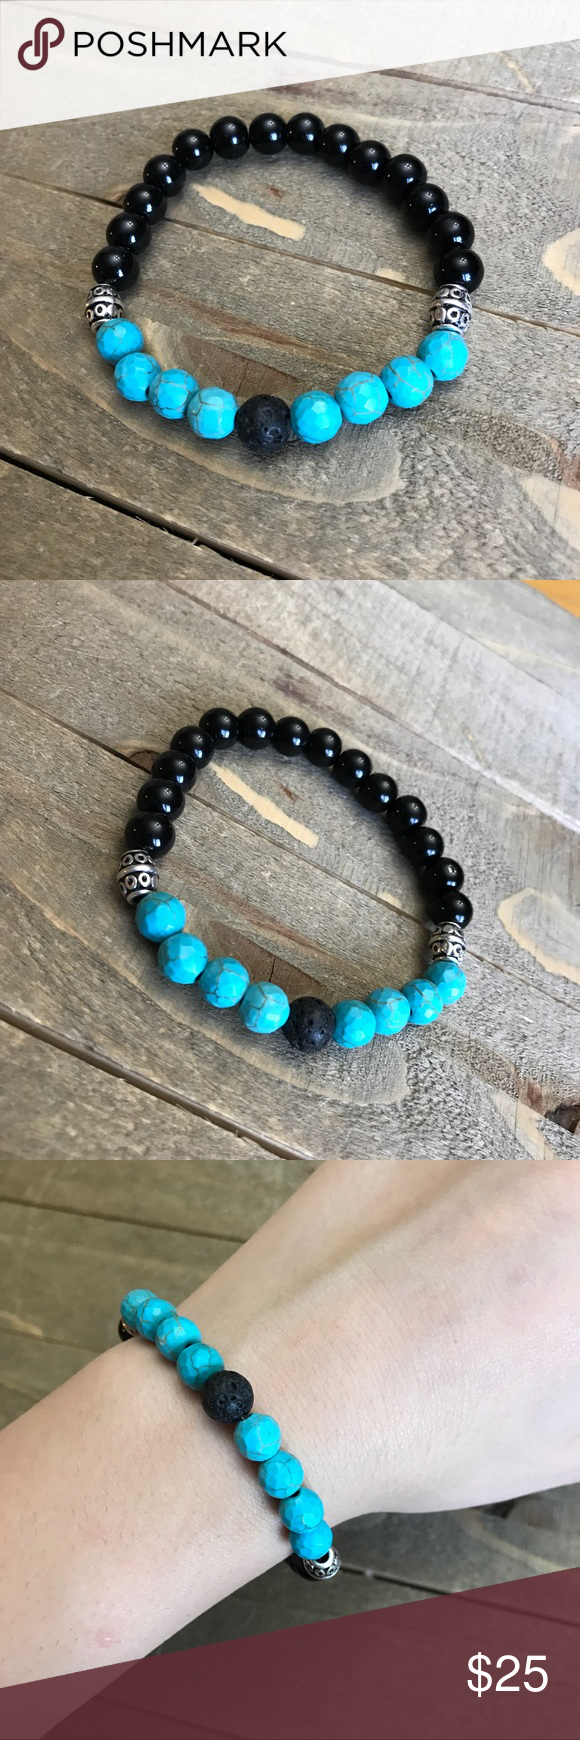 Handmade Natural Turquoise Stone Bracelet Beautiful And Black Obsidian Stones With Silver Er